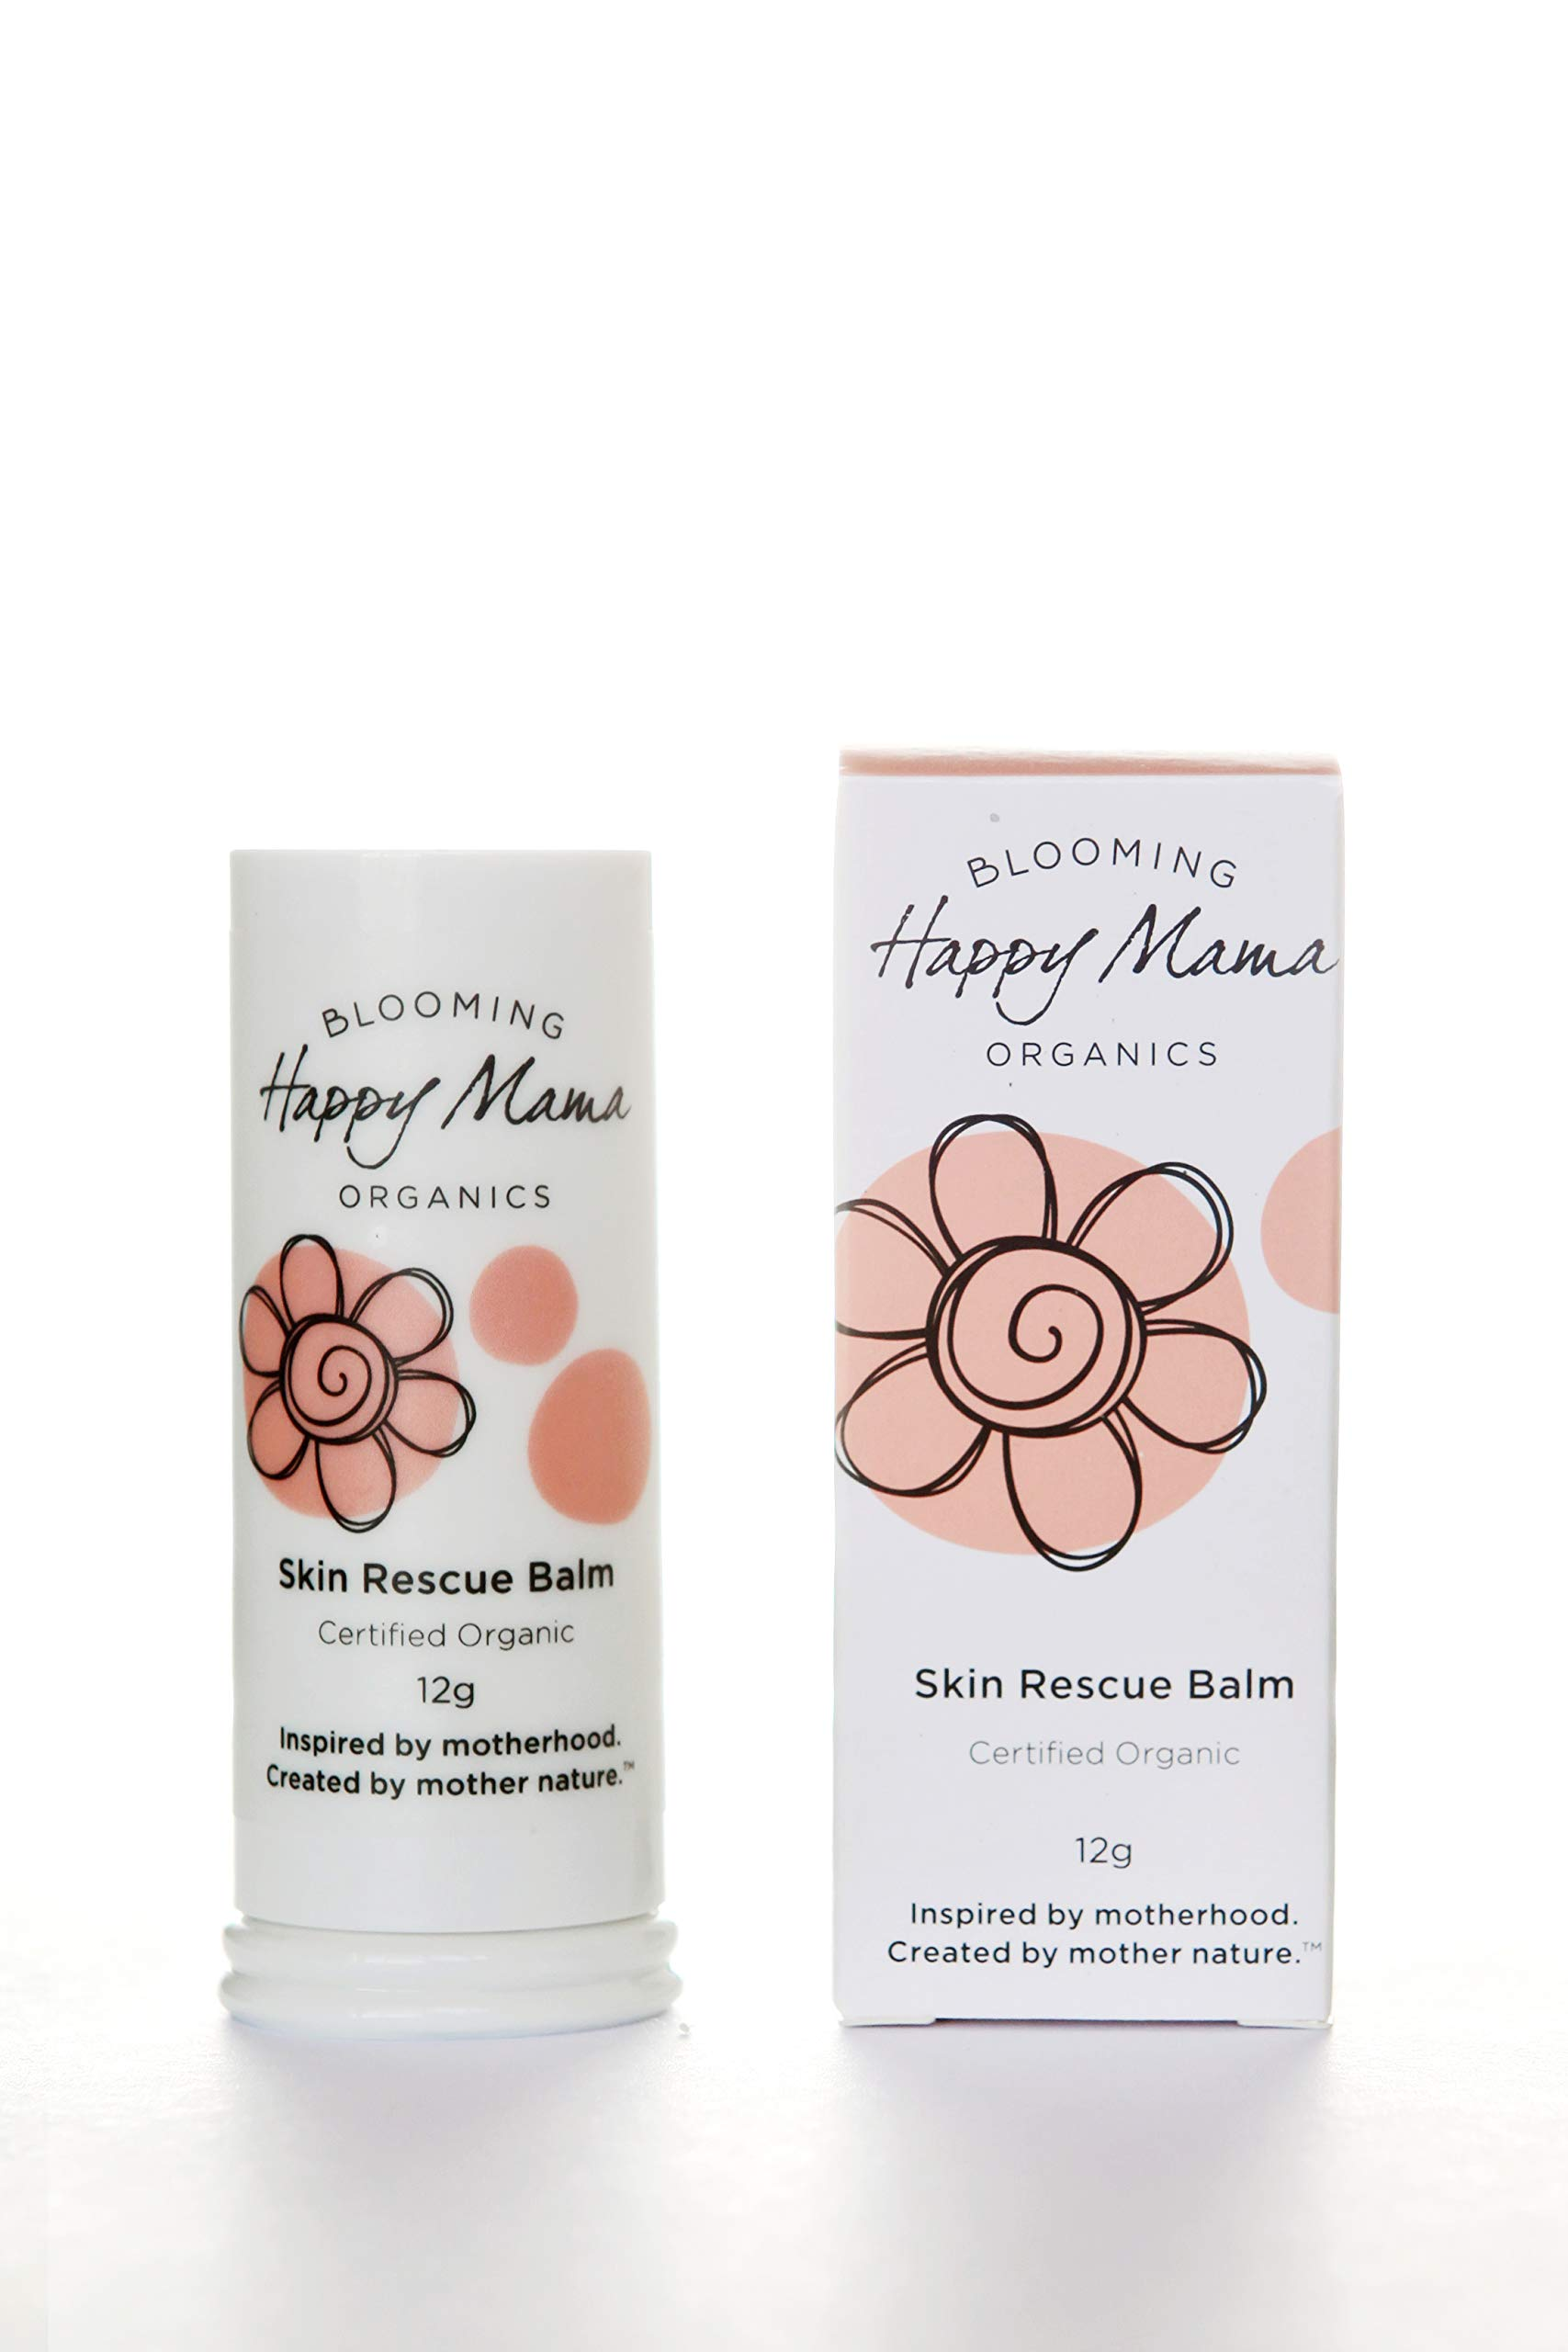 Happy Mama Organics, Natural, Certified Organic, Mom and Baby Moisturizing Balm, Multi Use, Dry Skin, Eczema, Cradle Cap. Belly Cream for Pregnancy Stretch Marks and C section Scar. Made In Australia.